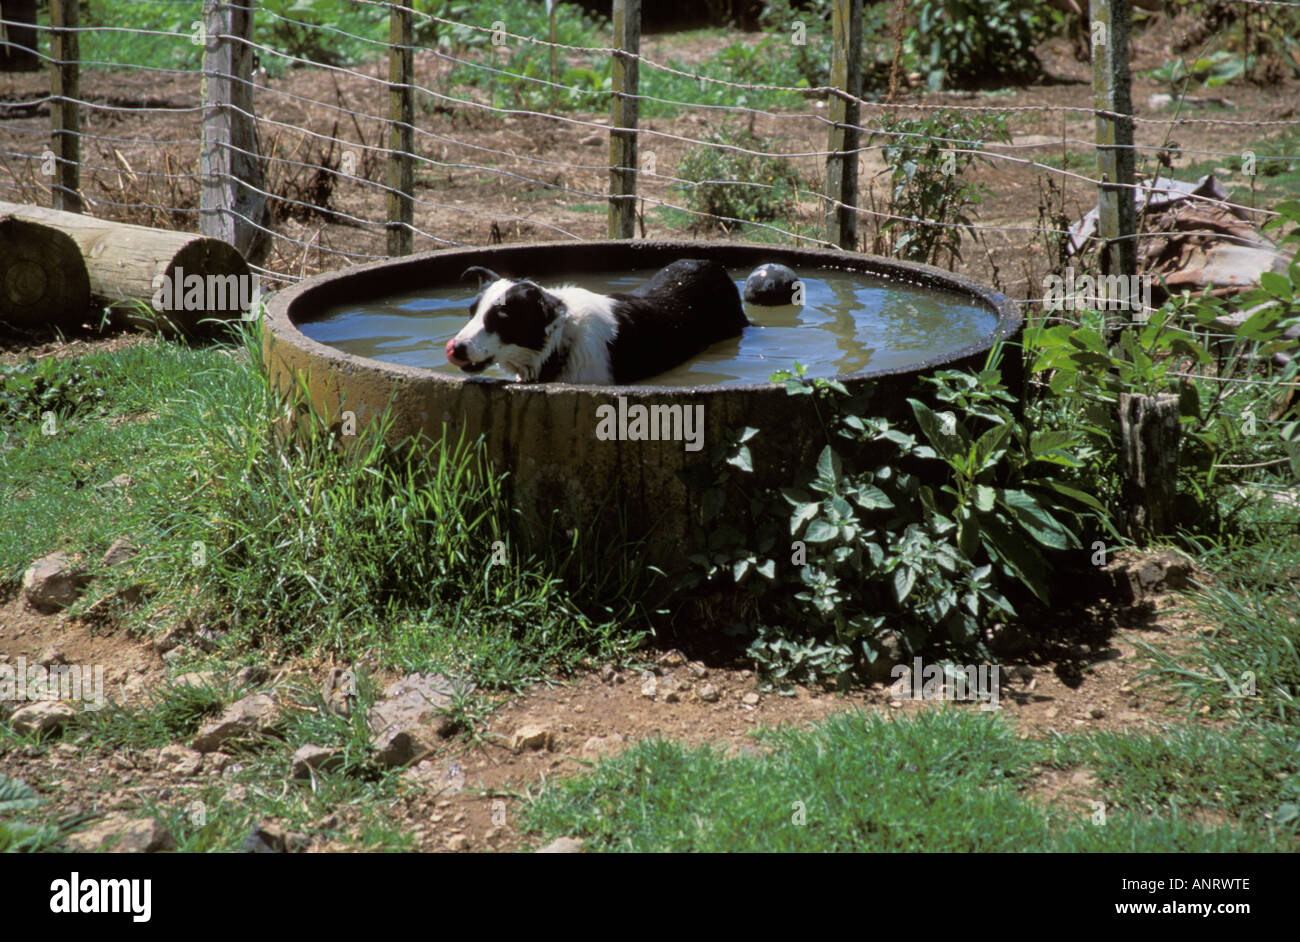 Sheep Farm New Zealand Waiheke Island Lucy cooling off in water trough - Stock Image